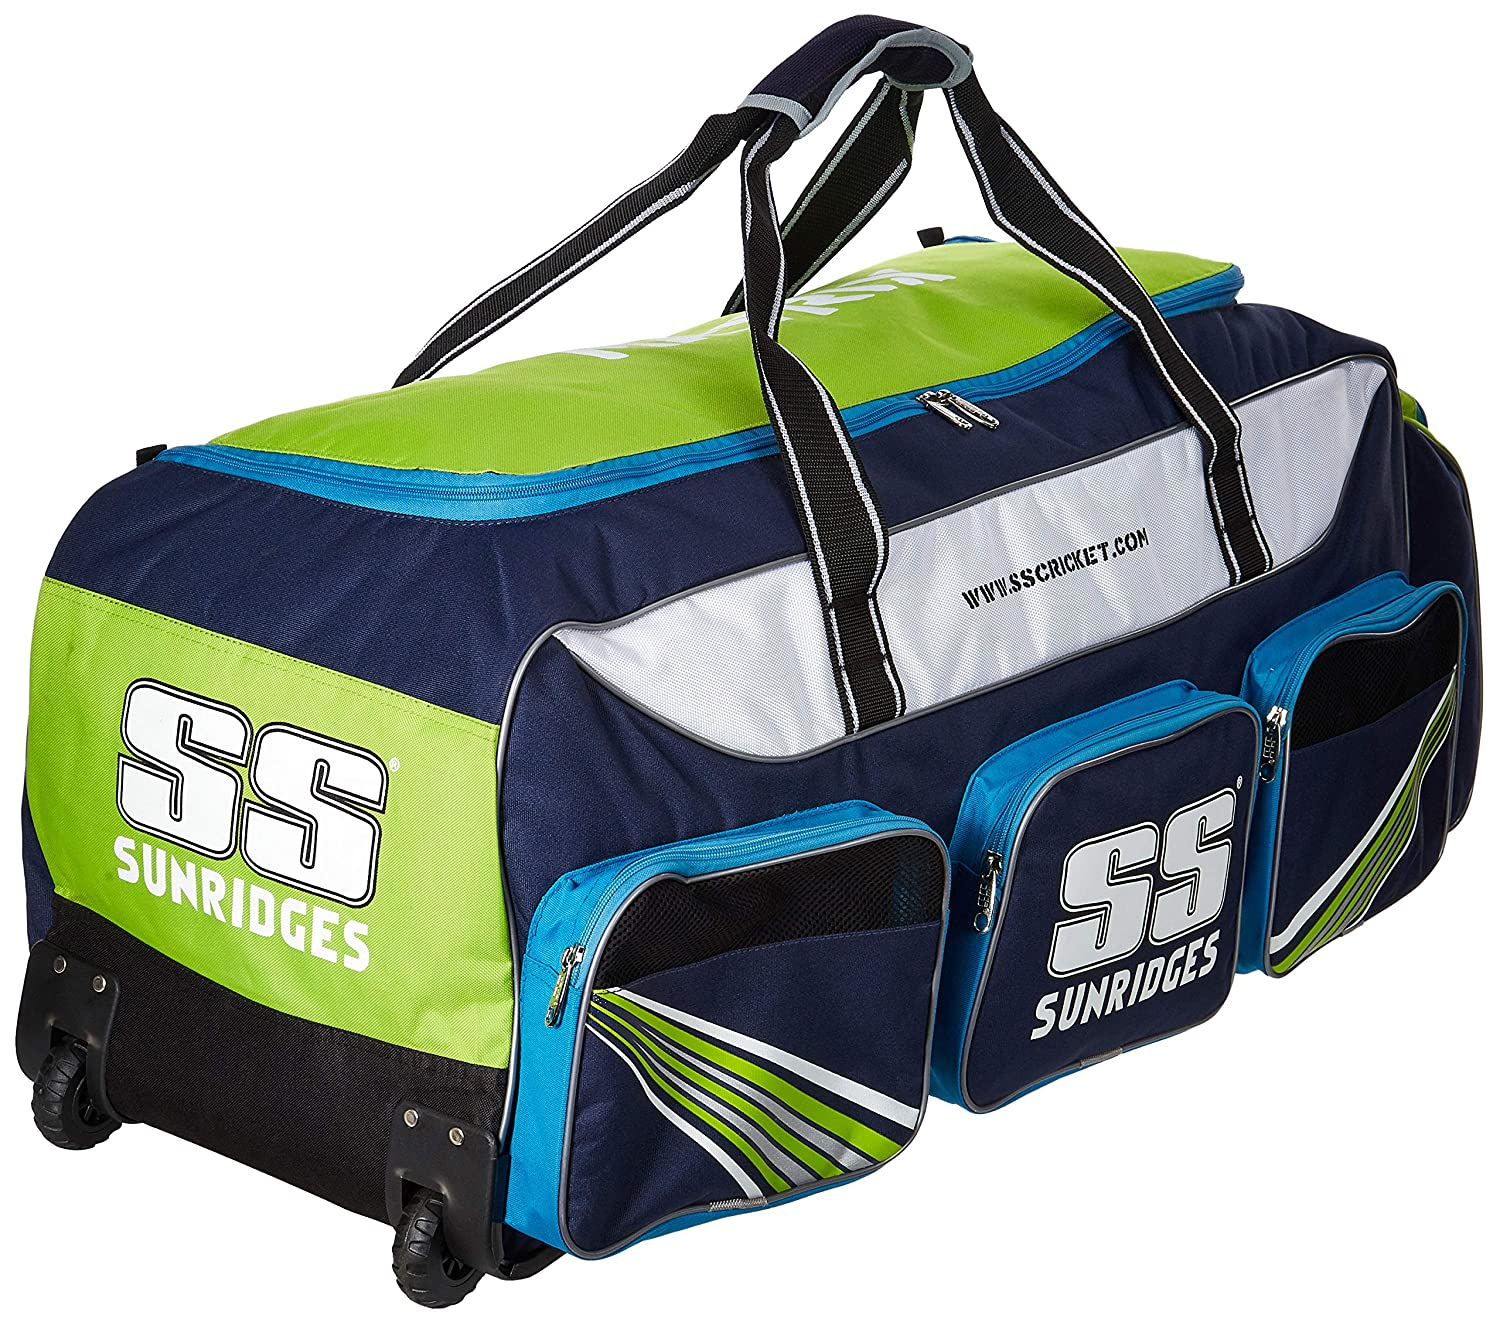 058c48d9a Buy SS Matrix Kit Bag Online at Low Prices in India - Amazon.in